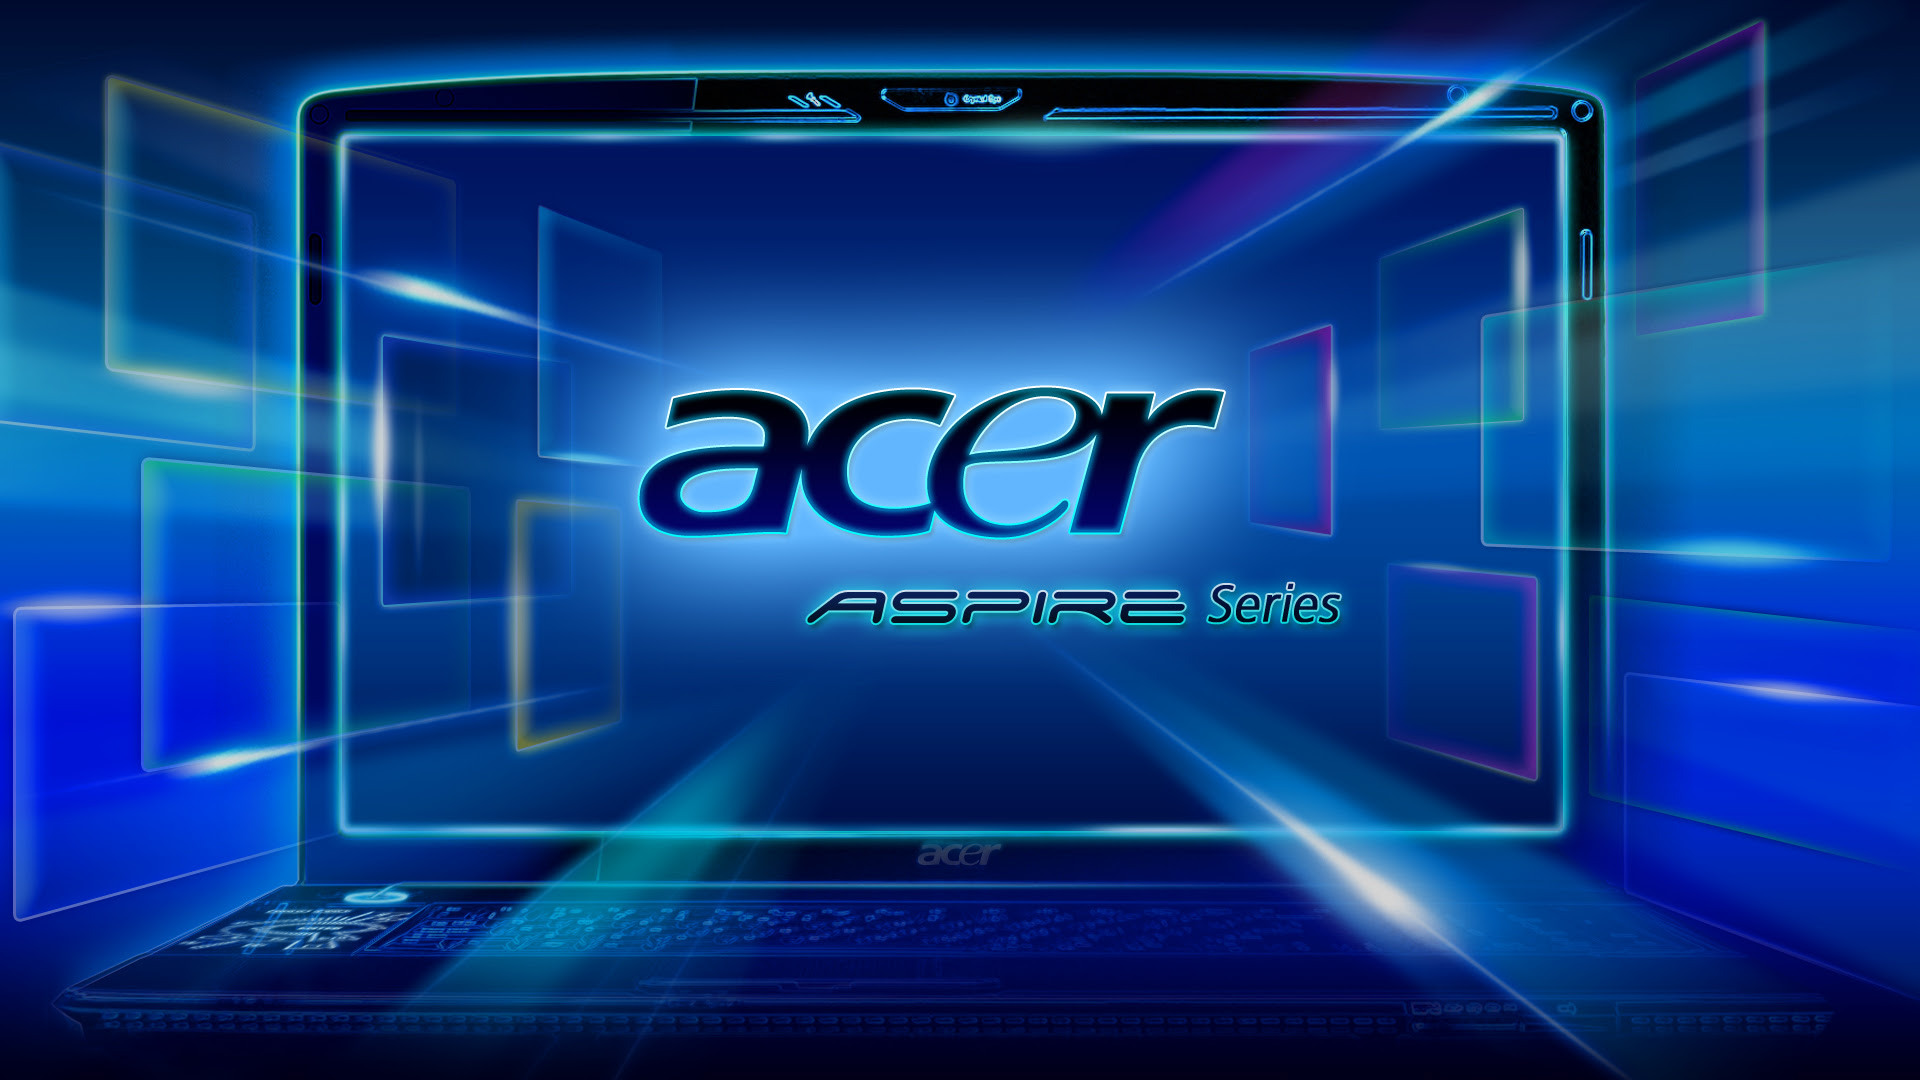 Sample Pictures Images Acer HD Wallpaper And Background Photos